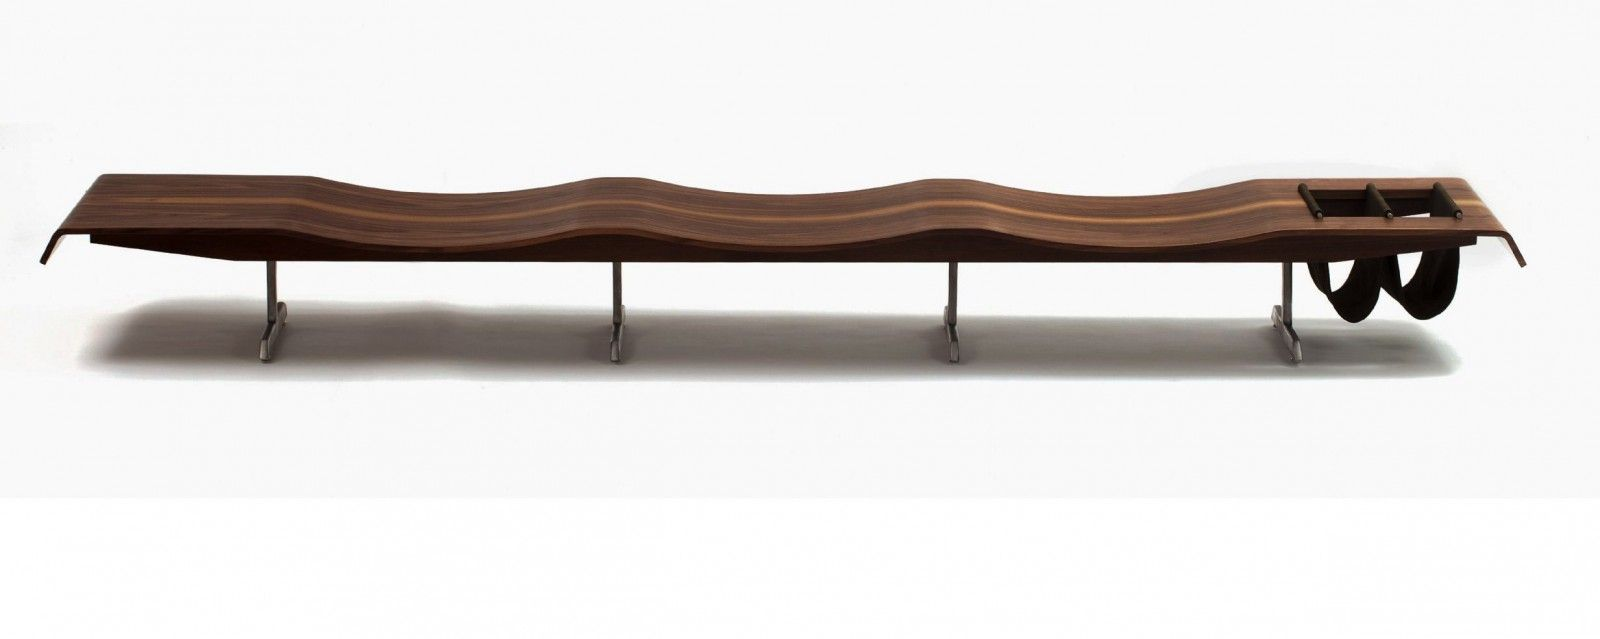 Newly Re Issued Furniture Pieces By Oscar Niemeyer